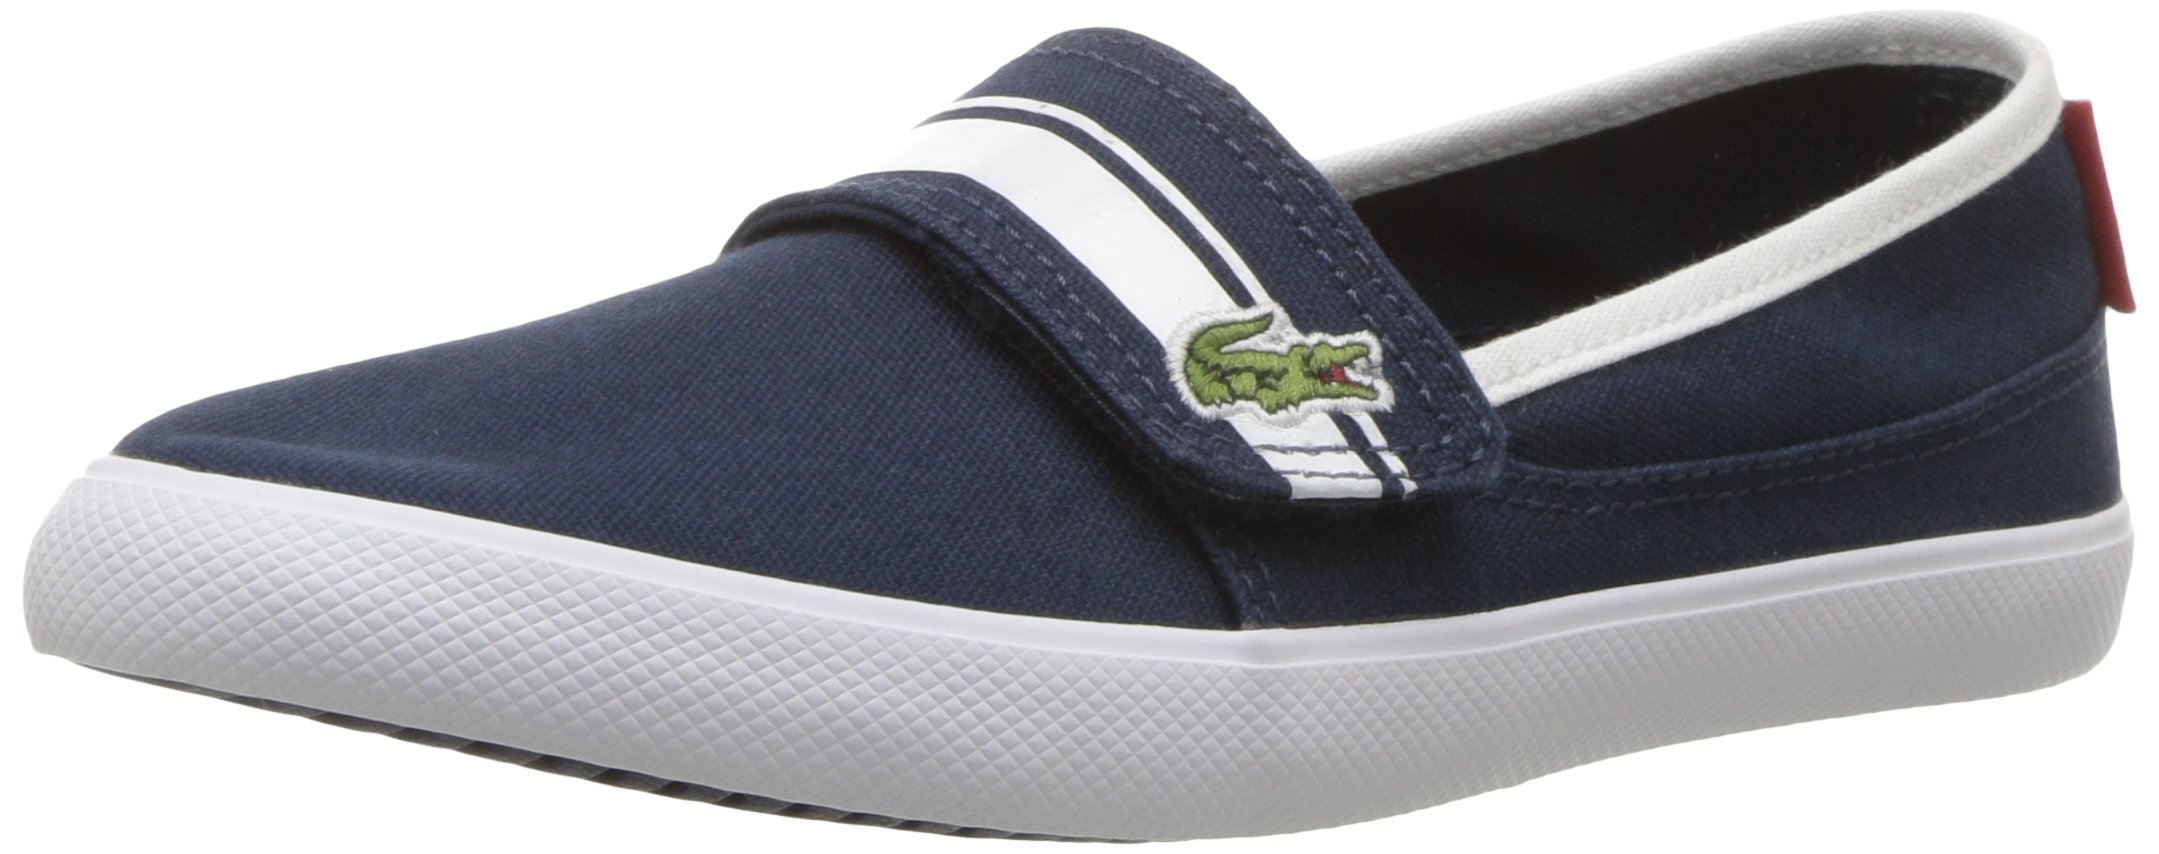 Lacoste Kids' Marice Slip-ONS,Navy/White Cotton Canvas,13. M US Little Kid